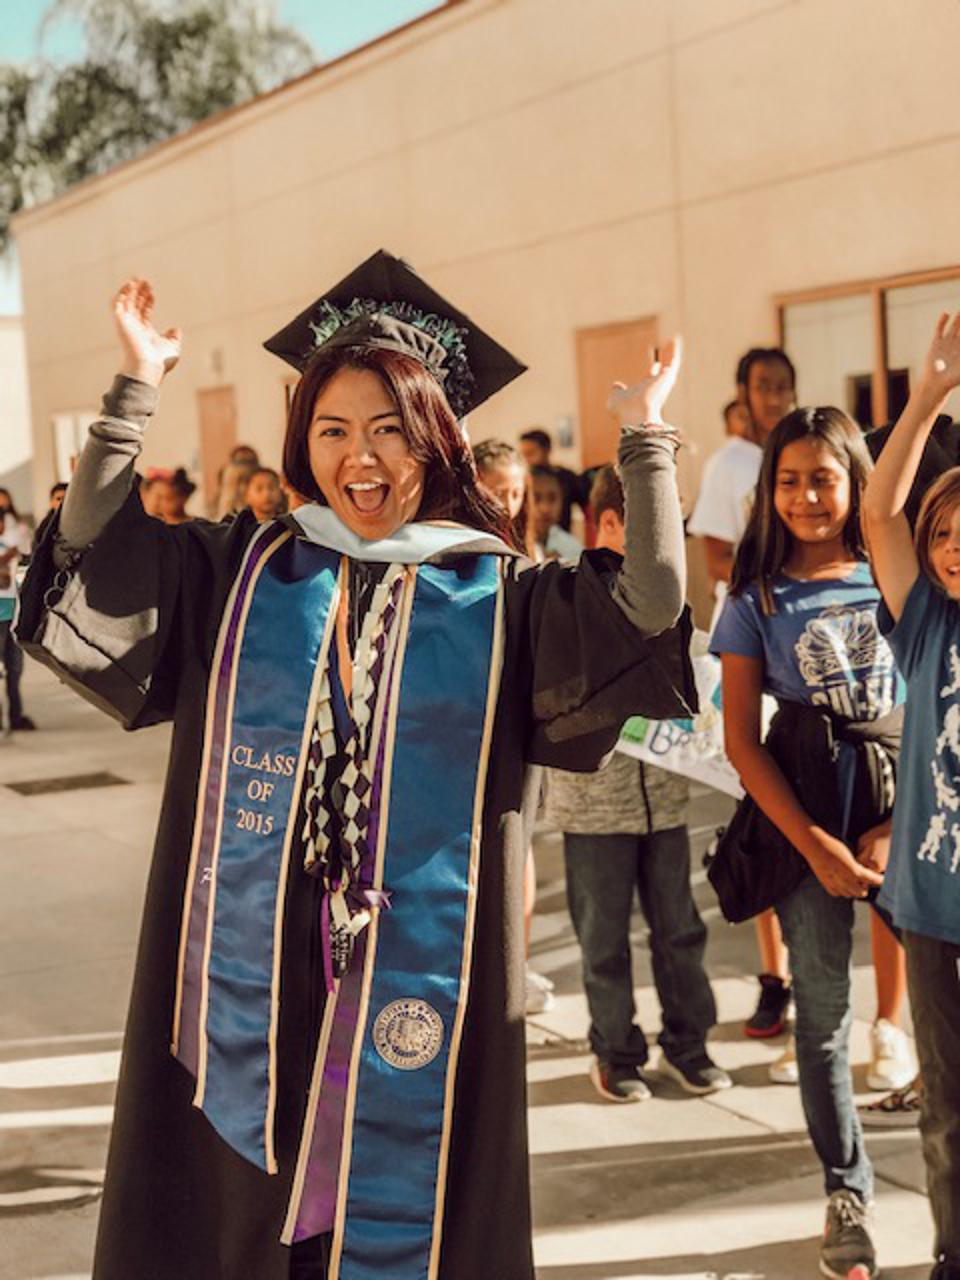 A teacher in graduation robes stands with her elementary students.